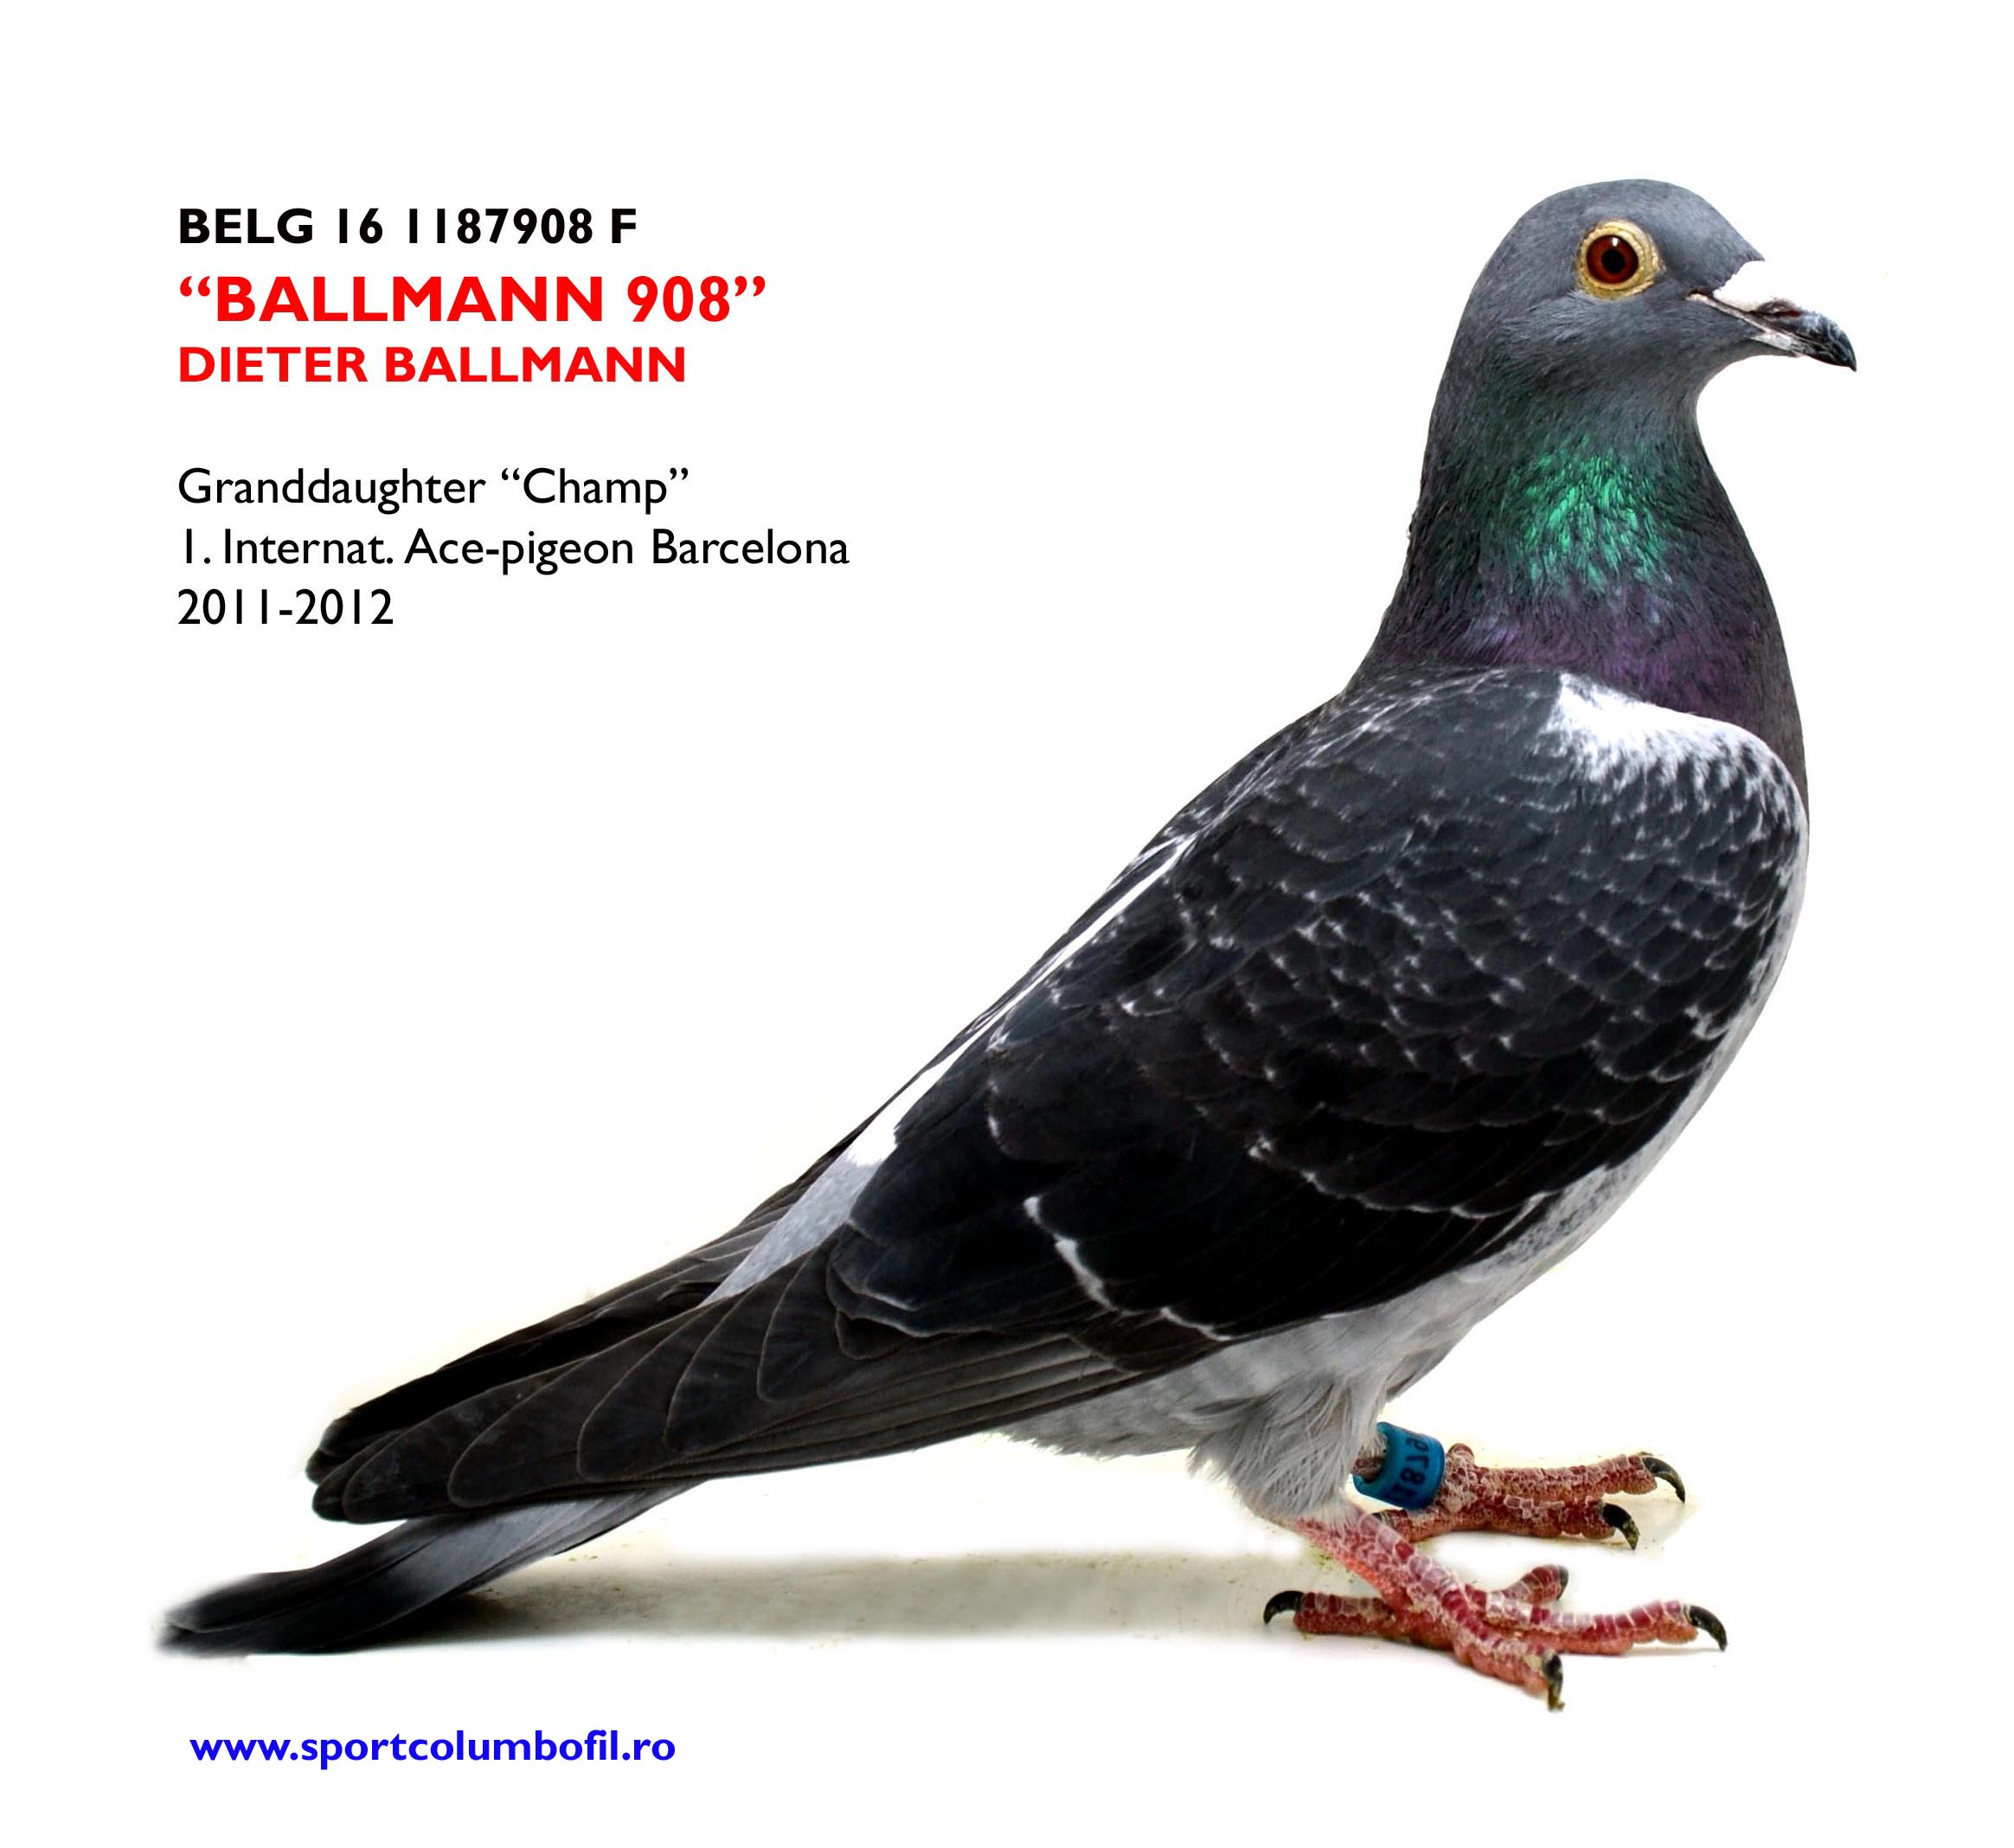 BELG 16 1187908 F - Dieter Ballmann - Granddaughter CHAMP 1 Ace Europa Barcelona 2 years